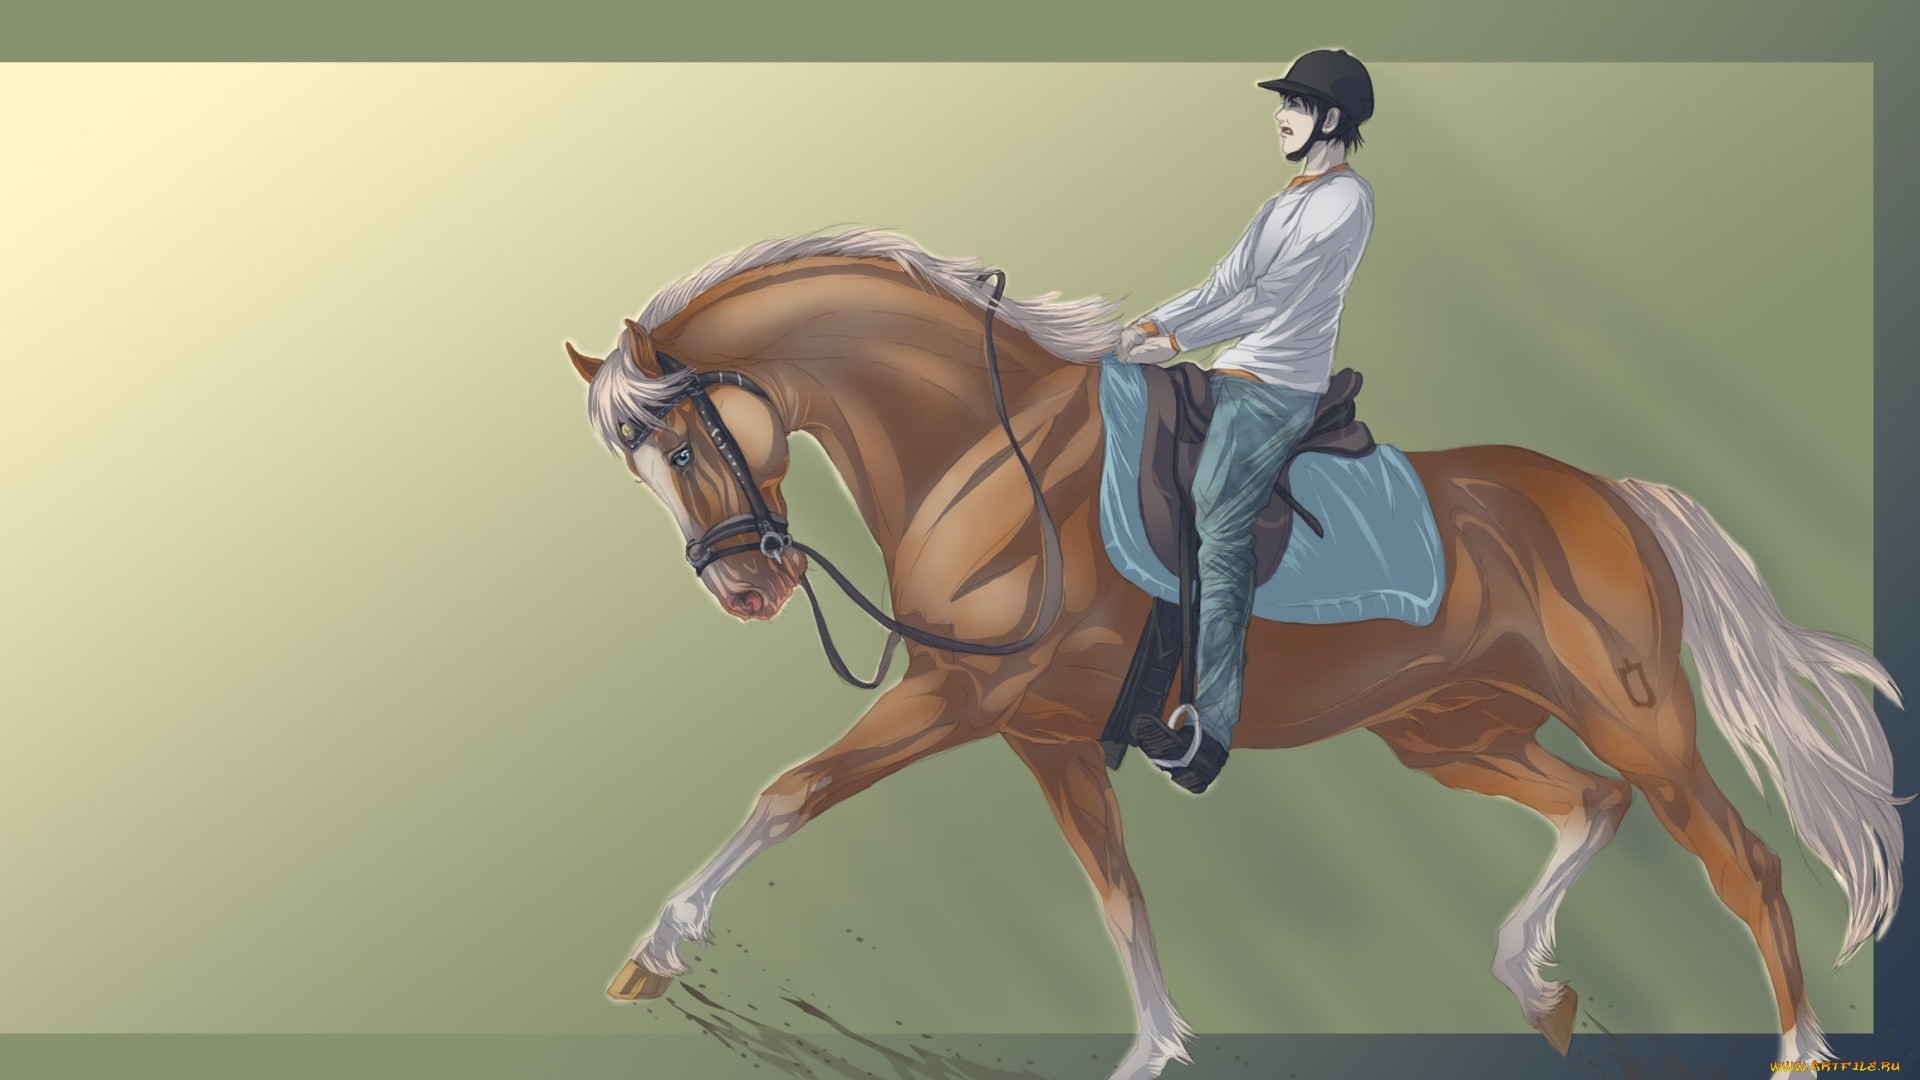 Rider On A Horse Art Image